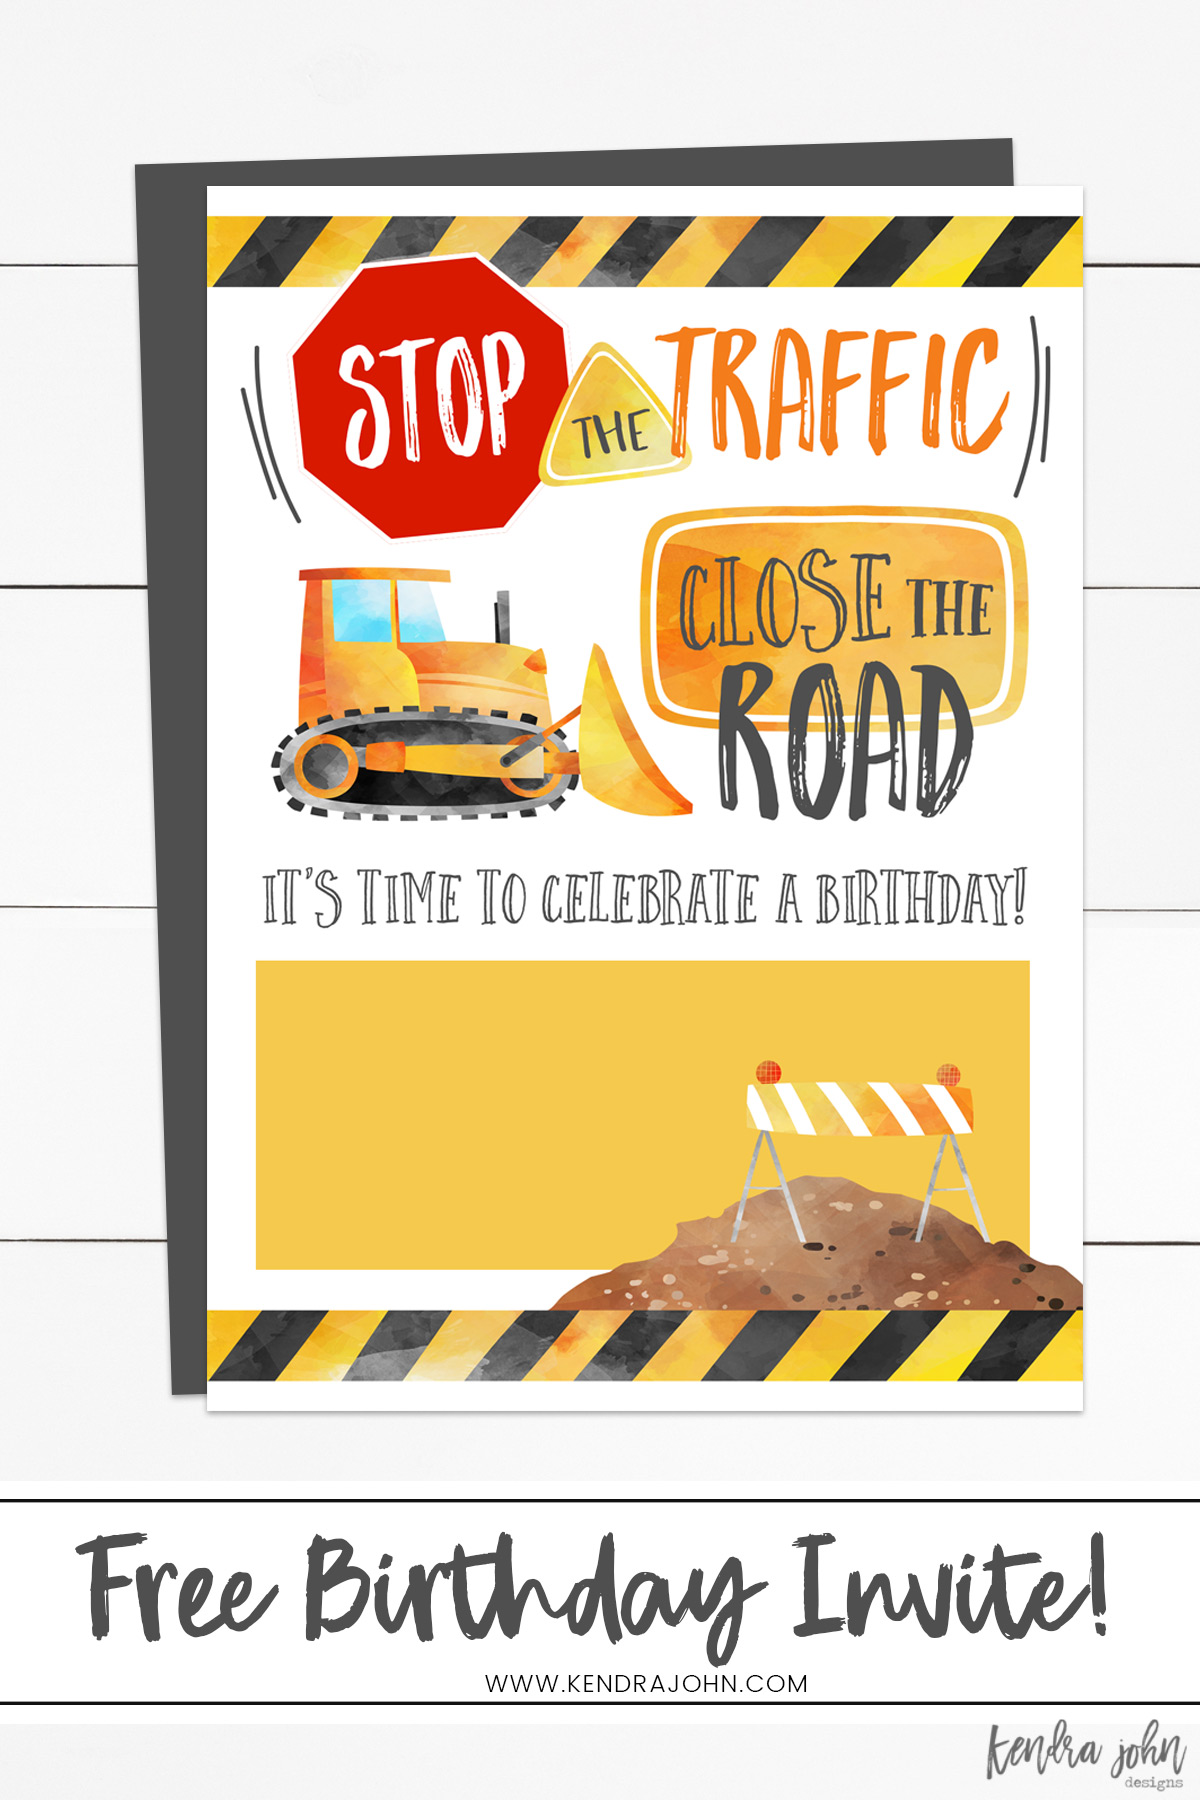 image regarding Free Printable Construction Birthday Invitations called Cost-free] Structure Birthday Occasion Invites Kendra John